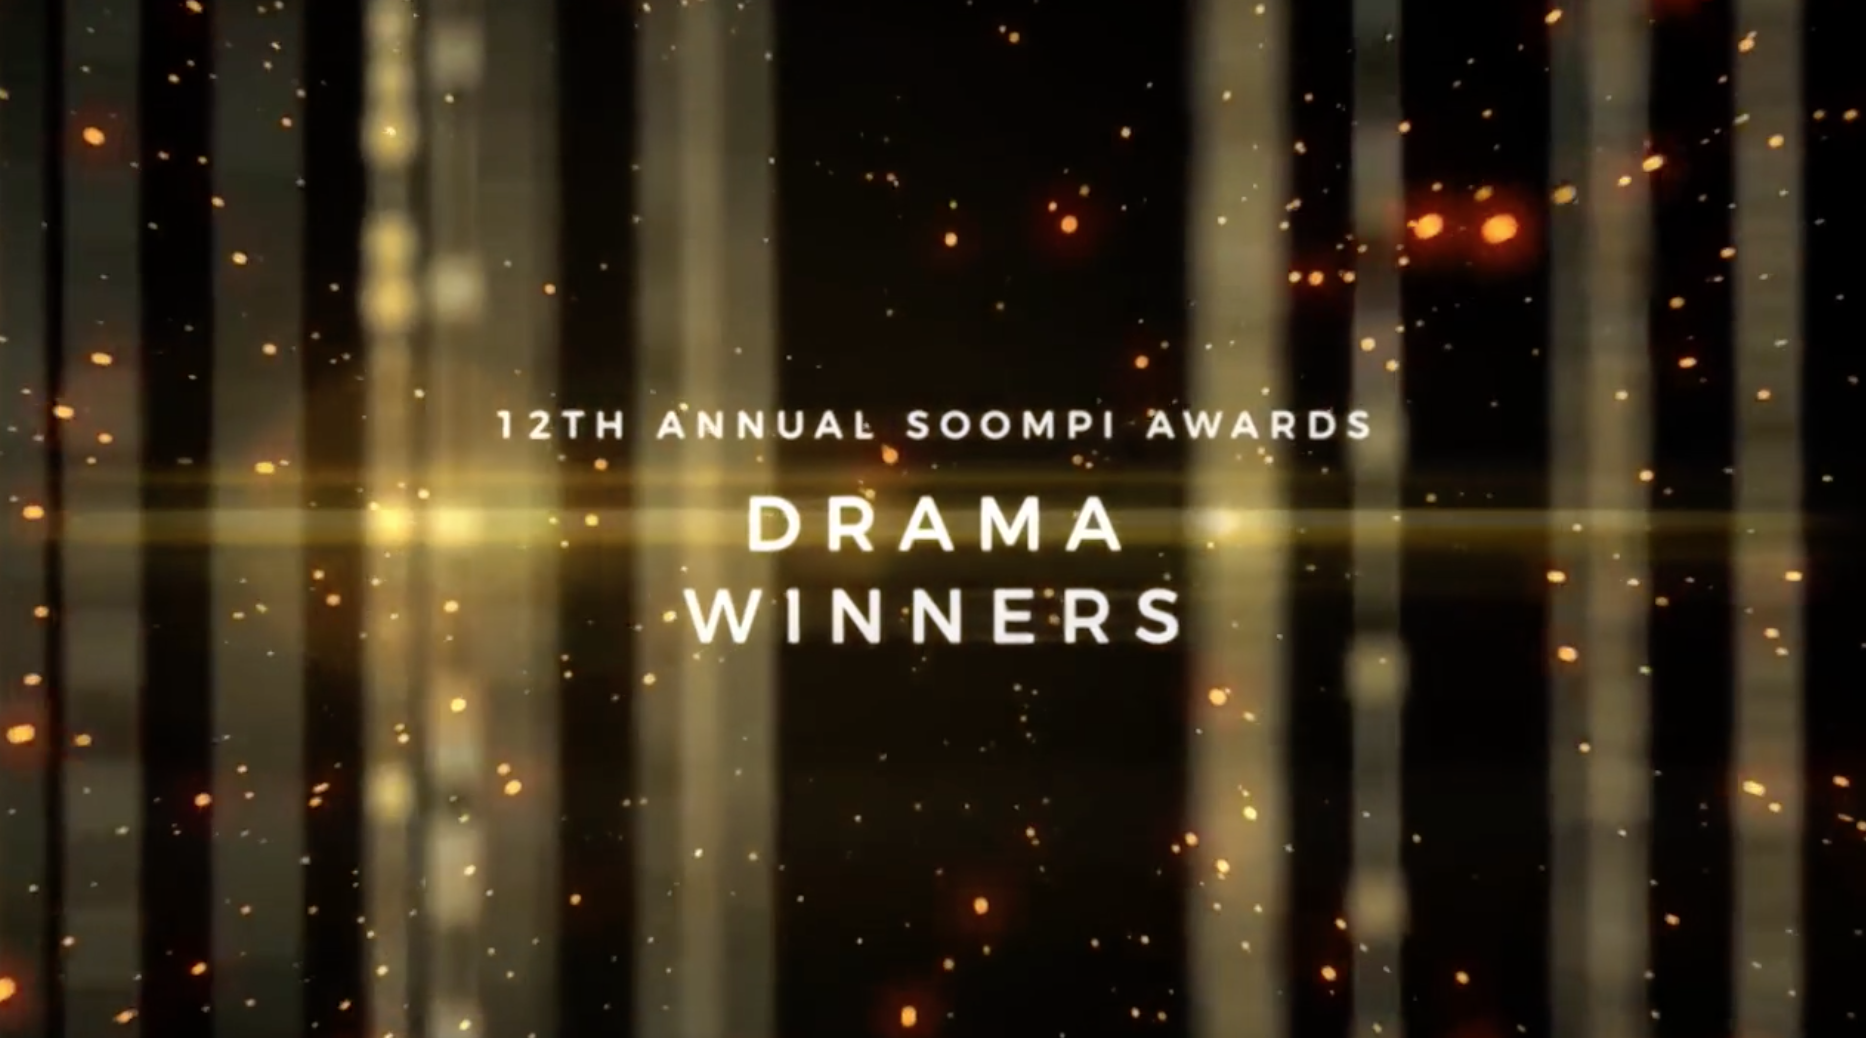 12th Annual Soompi Awards Episode 31: 12th Annual Soompi Awards Drama  Winners Lee Min Ho, Lee Joon Gi, and More!